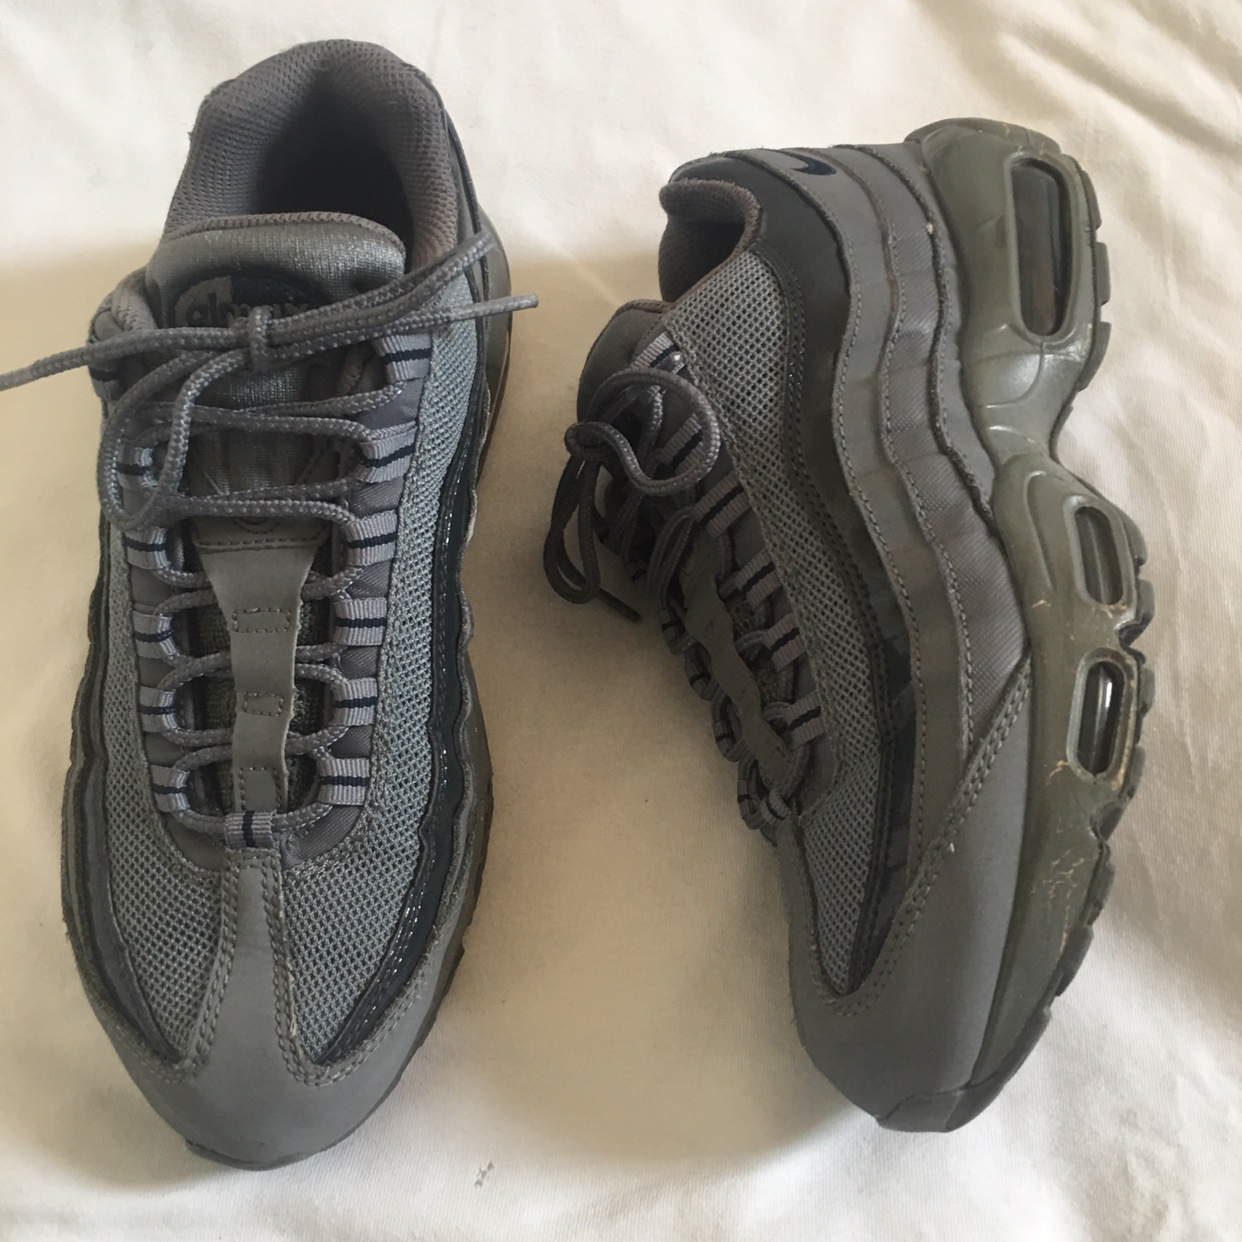 Nike grey air max 95 UK SIZE 6 with 3M reflective...